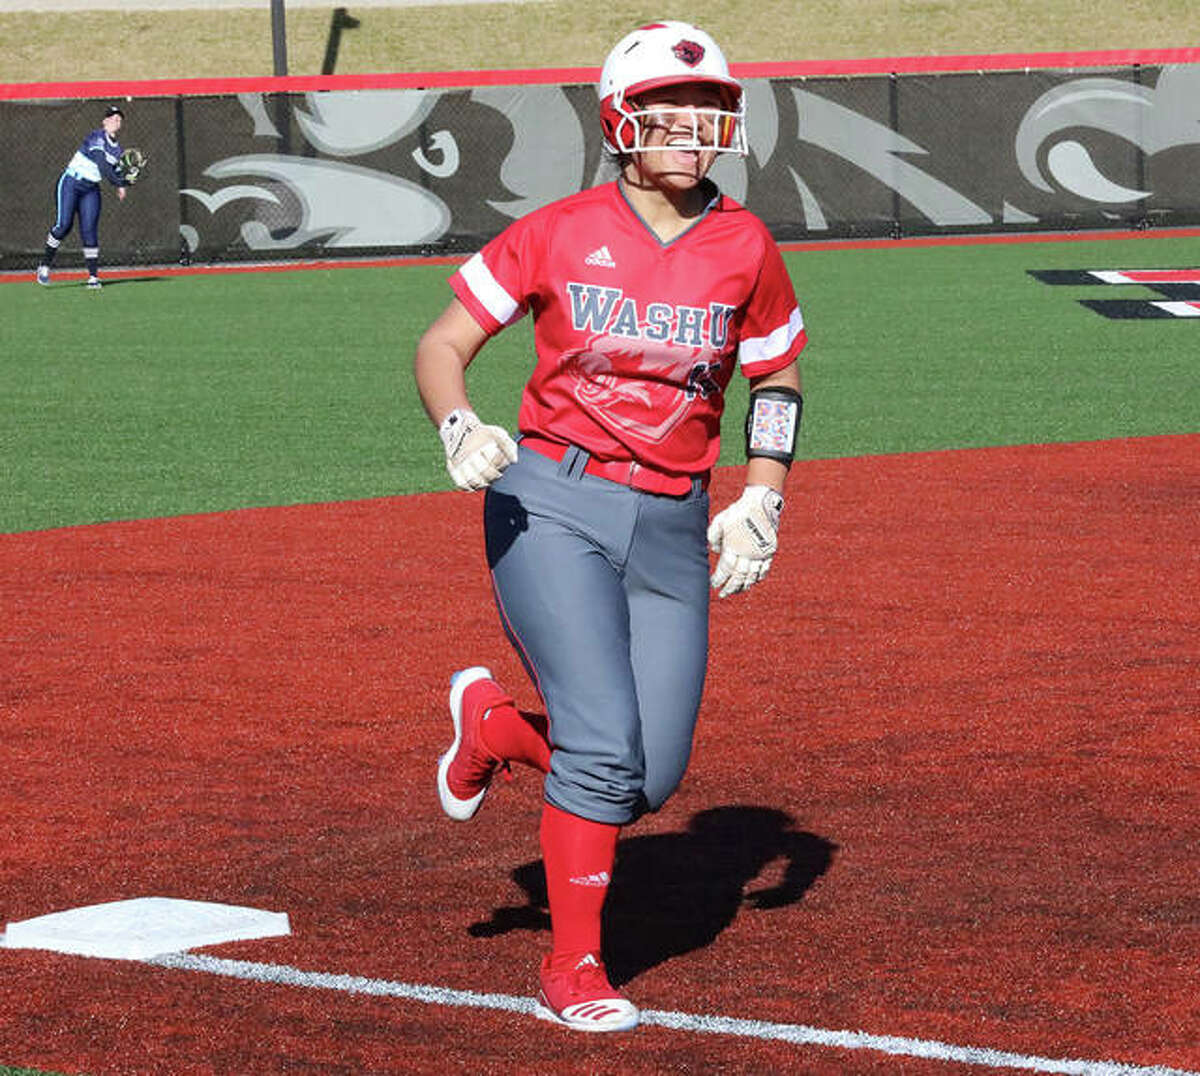 Wash U freshman Tami Wong rounds third base and heads home with a smile after hitting a home run against Westminster in her second college game Feb. 29 at Maryville University in St. Louis.